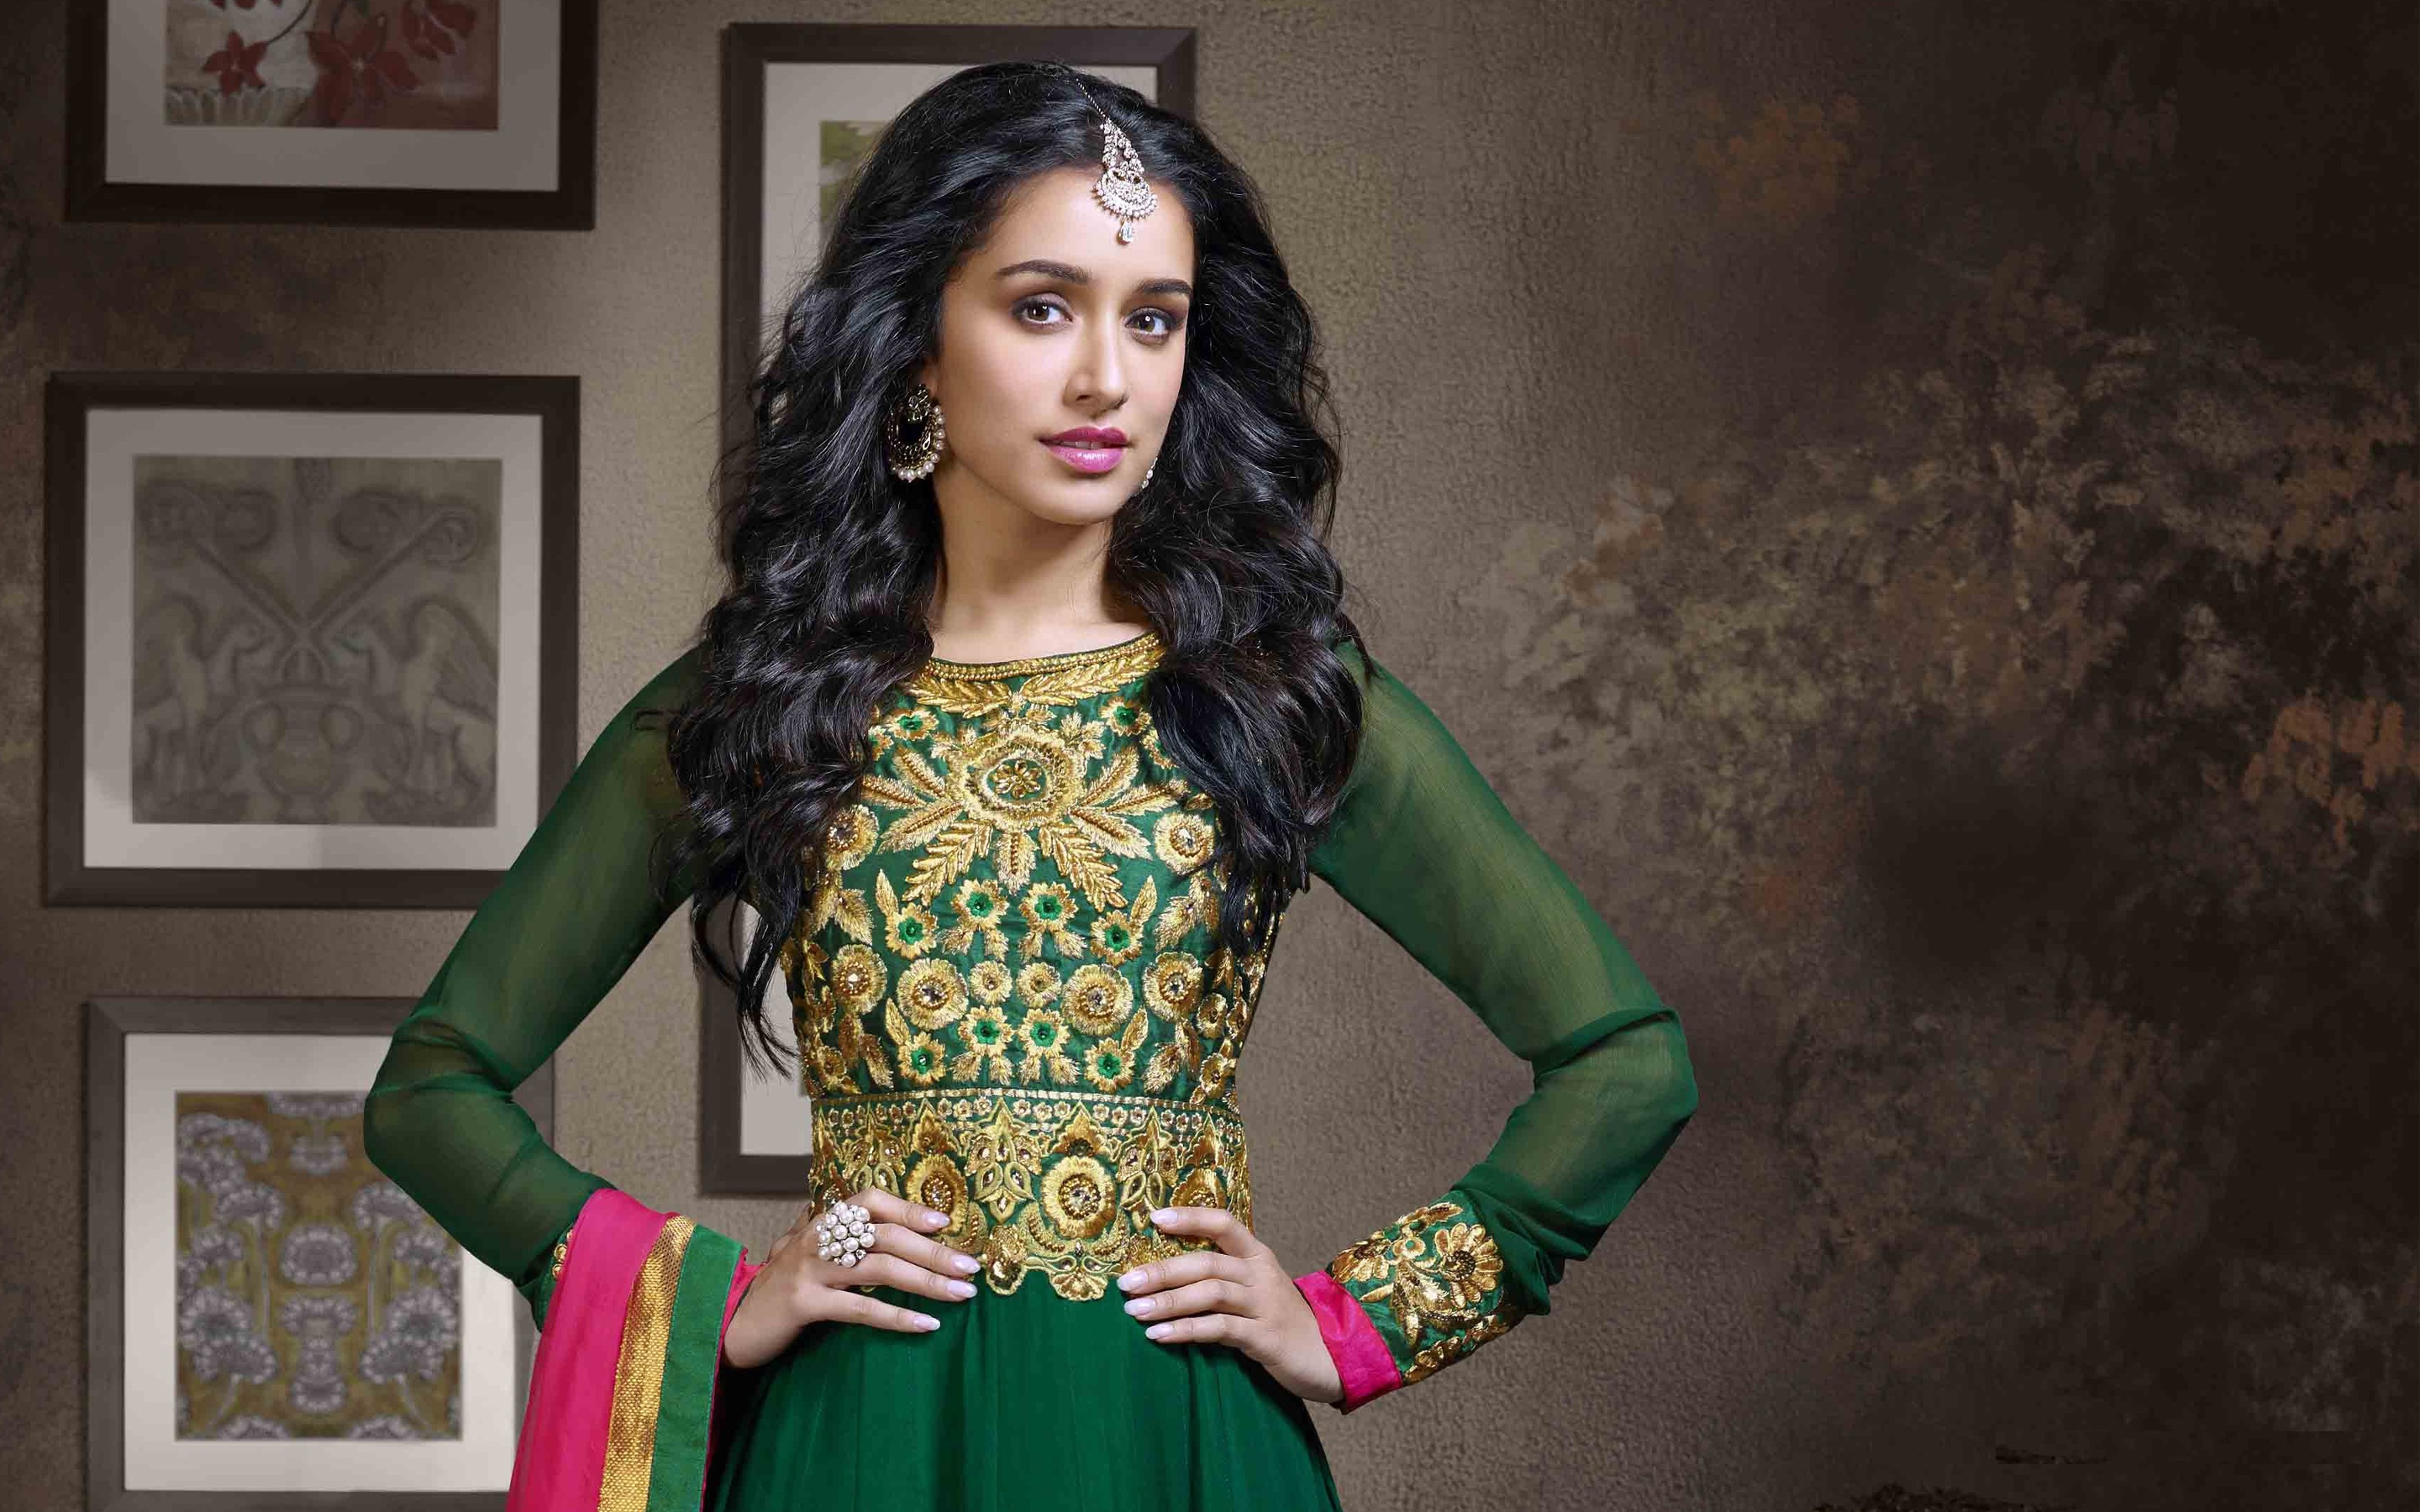 Shraddha Kapoor Indian Actress Panorama Download Desktop 2880x1800